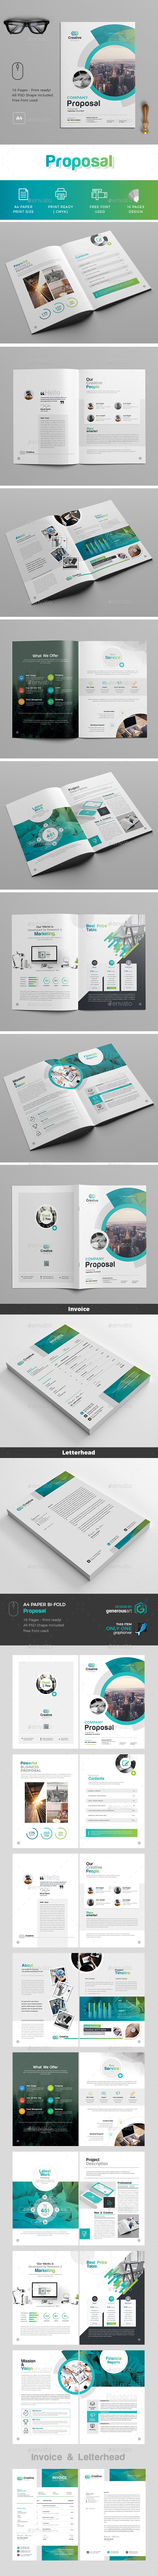 Proposal & Invoice - Proposals & Invoices Stationery